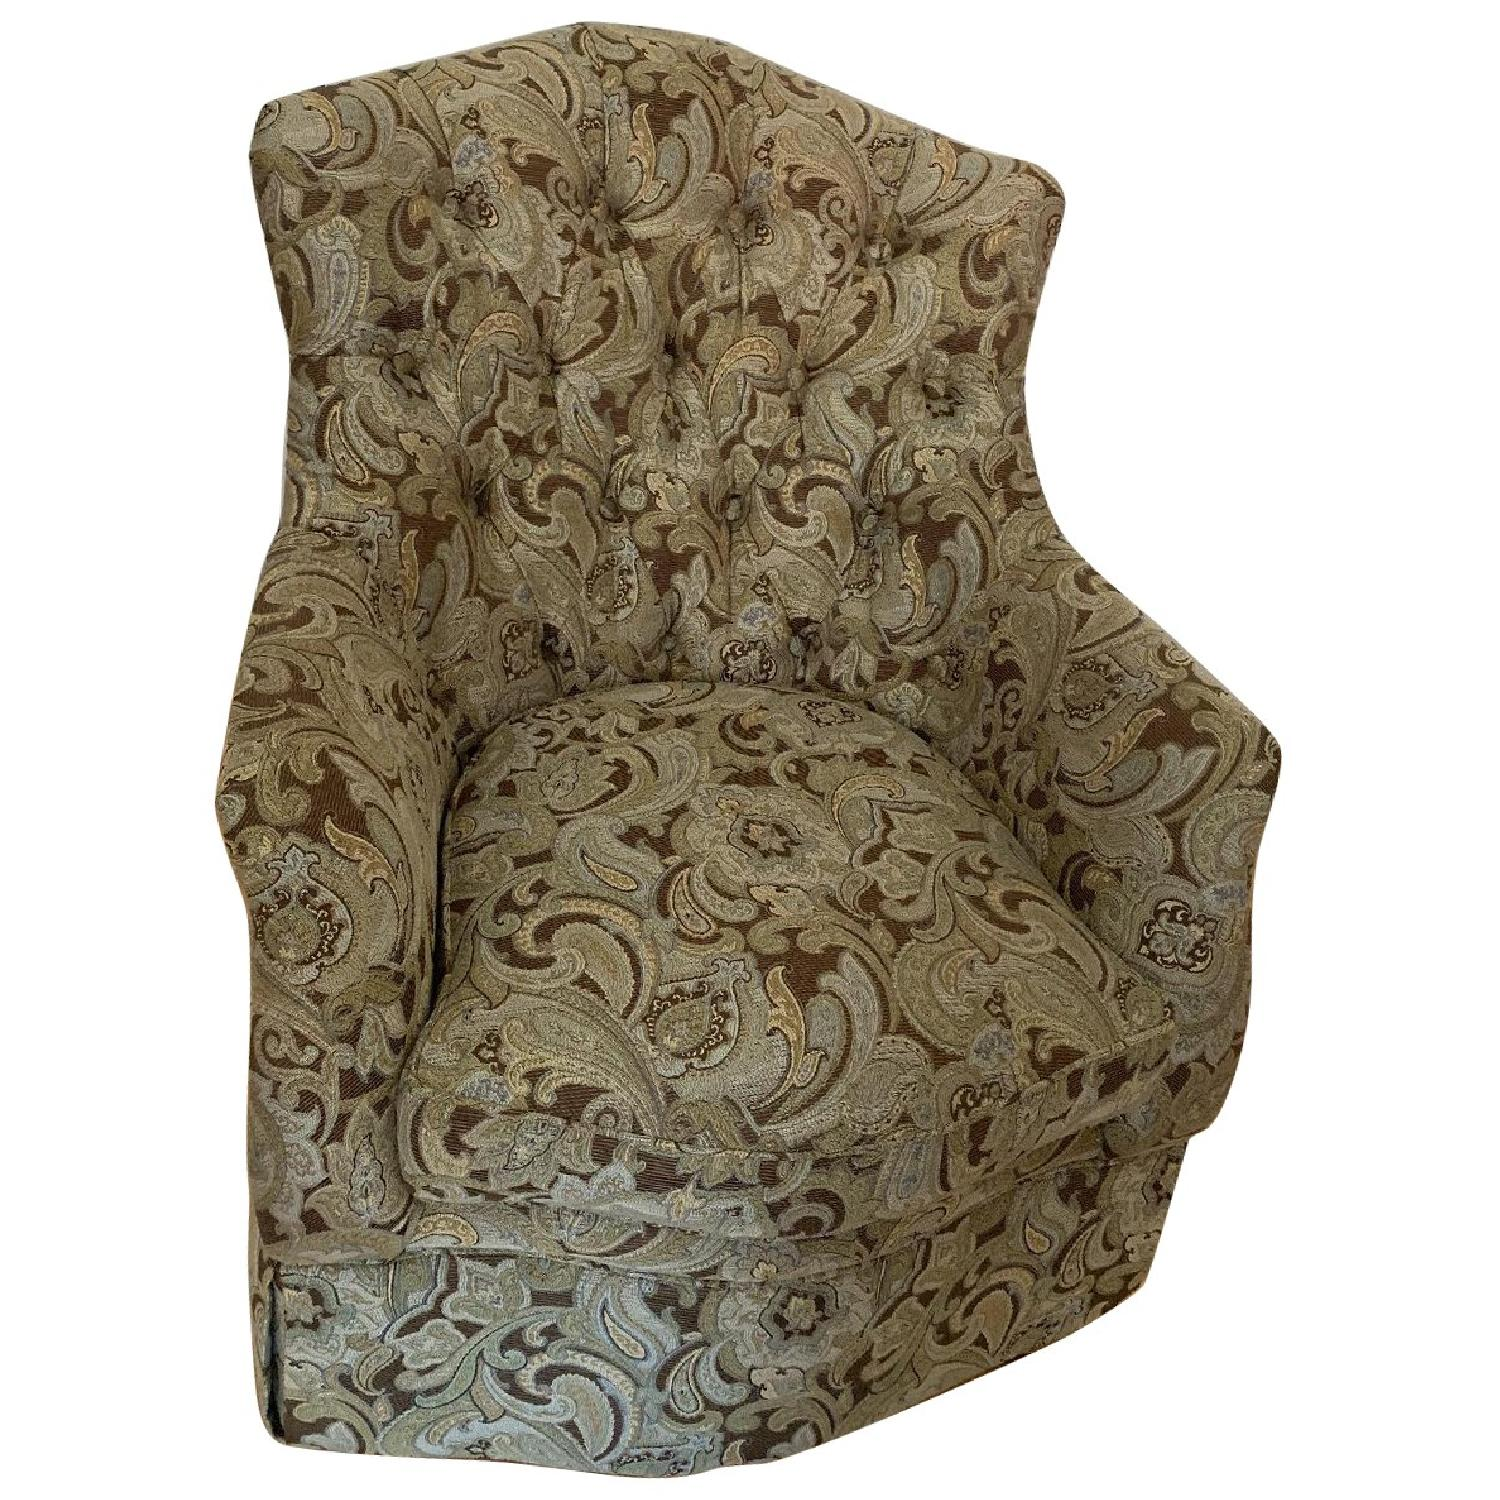 Schnadig Upholstered Arm Chair - image-0